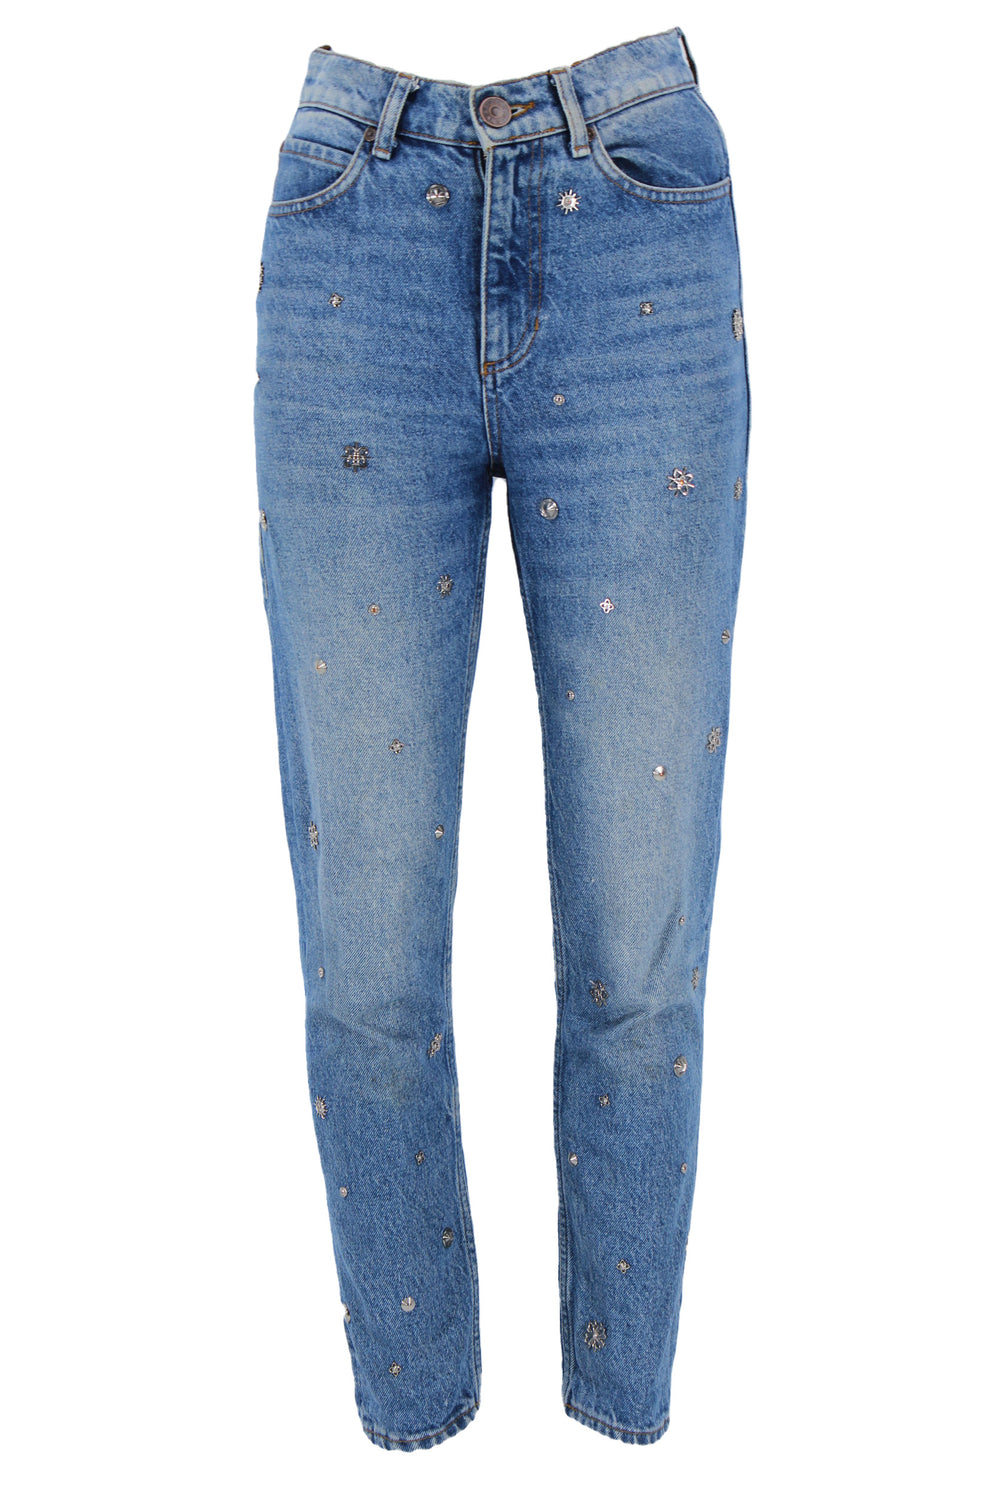 sandro blue jeans with embellishments. features high rise, silver charms throughout front of jeans and exterior pockets.